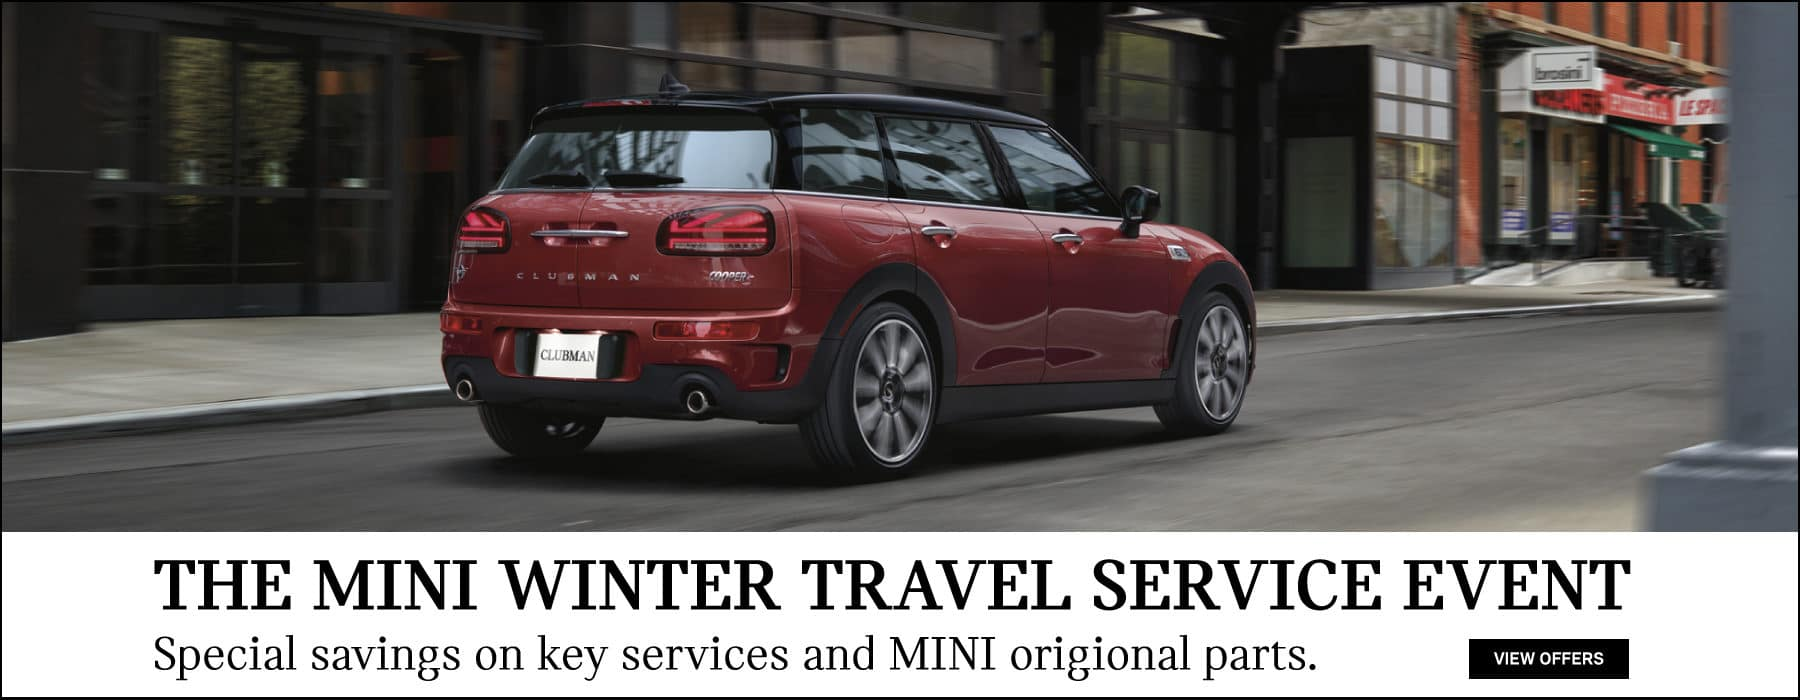 The MINI winter Travel Service Event.  Special savings on key services and MINI origional Parts.  Red 2020 MINI Cooper Clubman driving down city street.